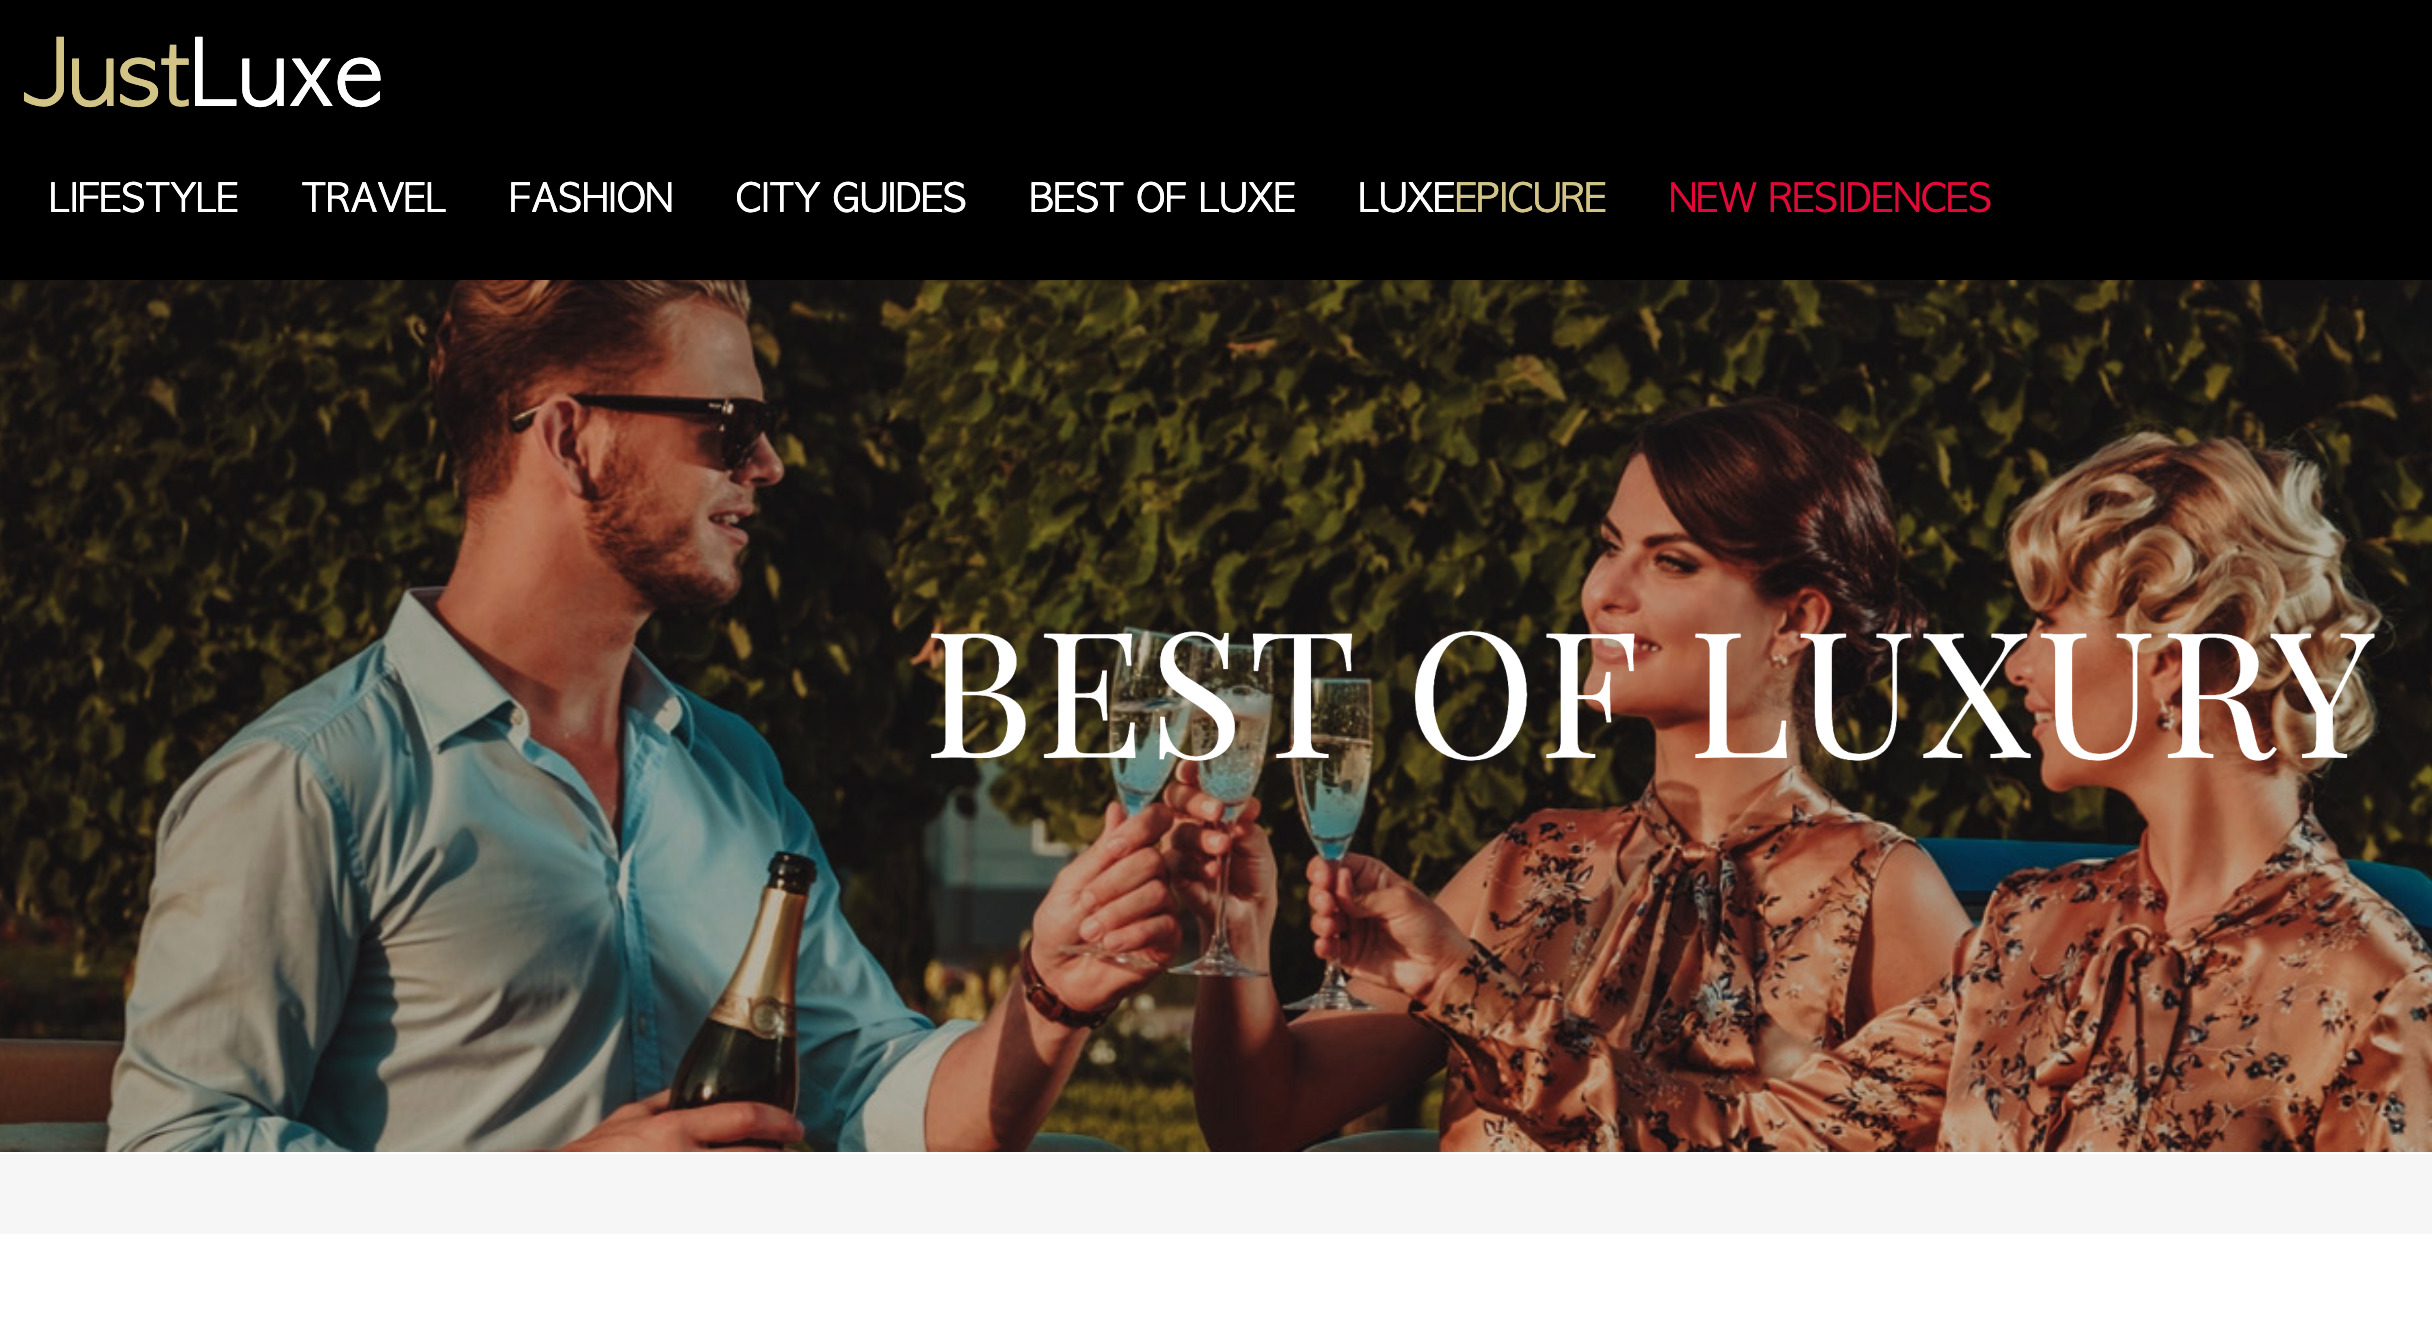 JustLuxe landing page example